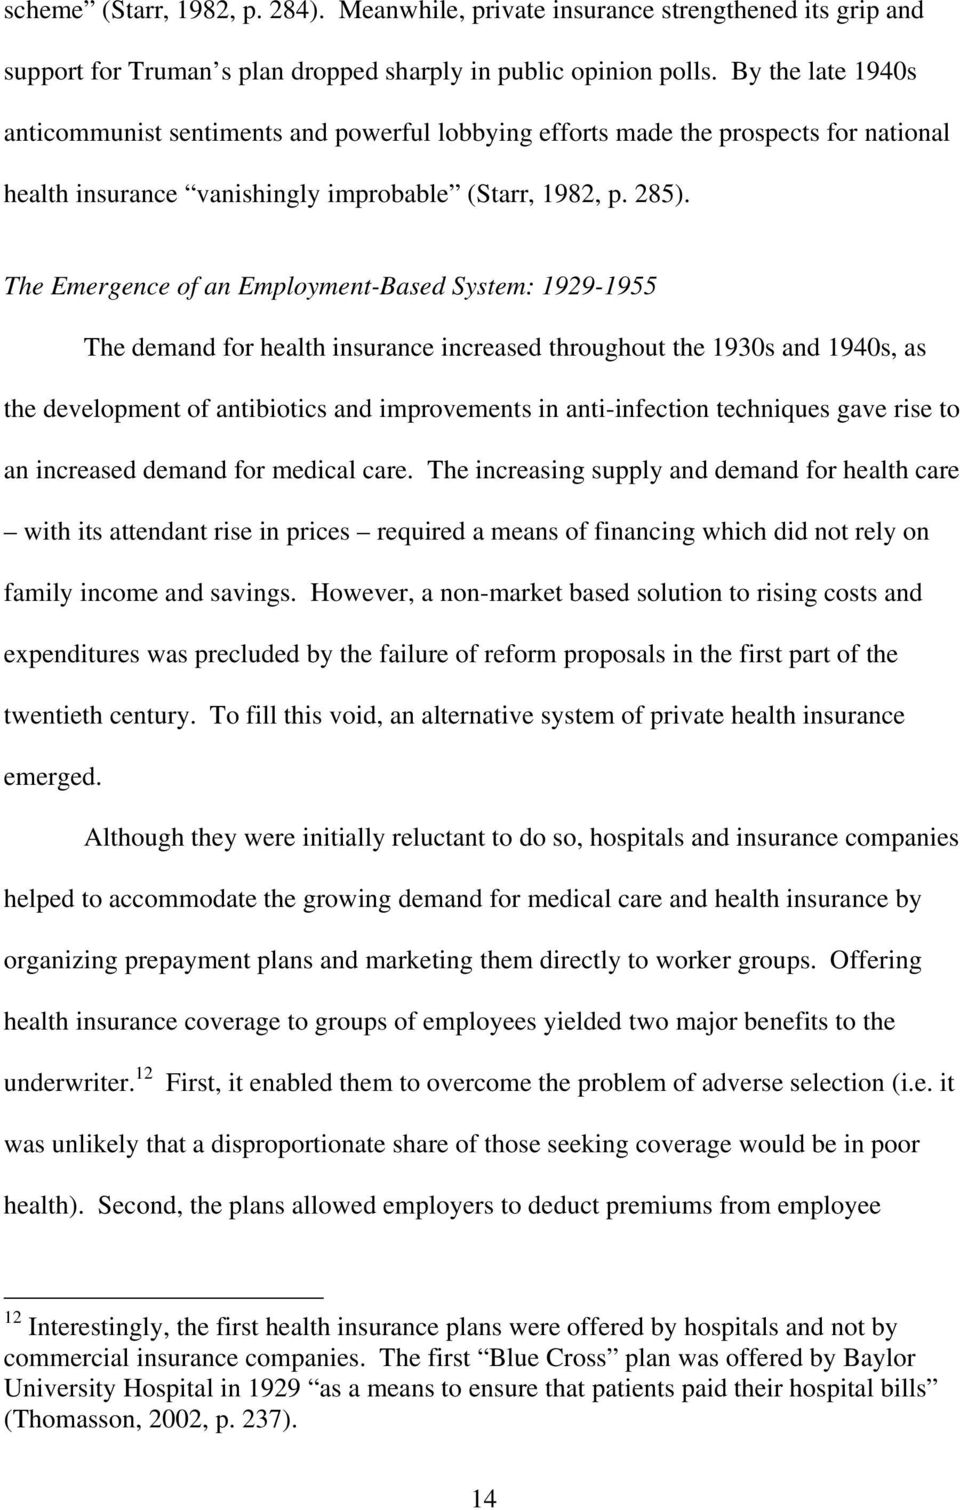 The Emergence of an Employment-Based System: 1929-1955 The demand for health insurance increased throughout the 1930s and 1940s, as the development of antibiotics and improvements in anti-infection